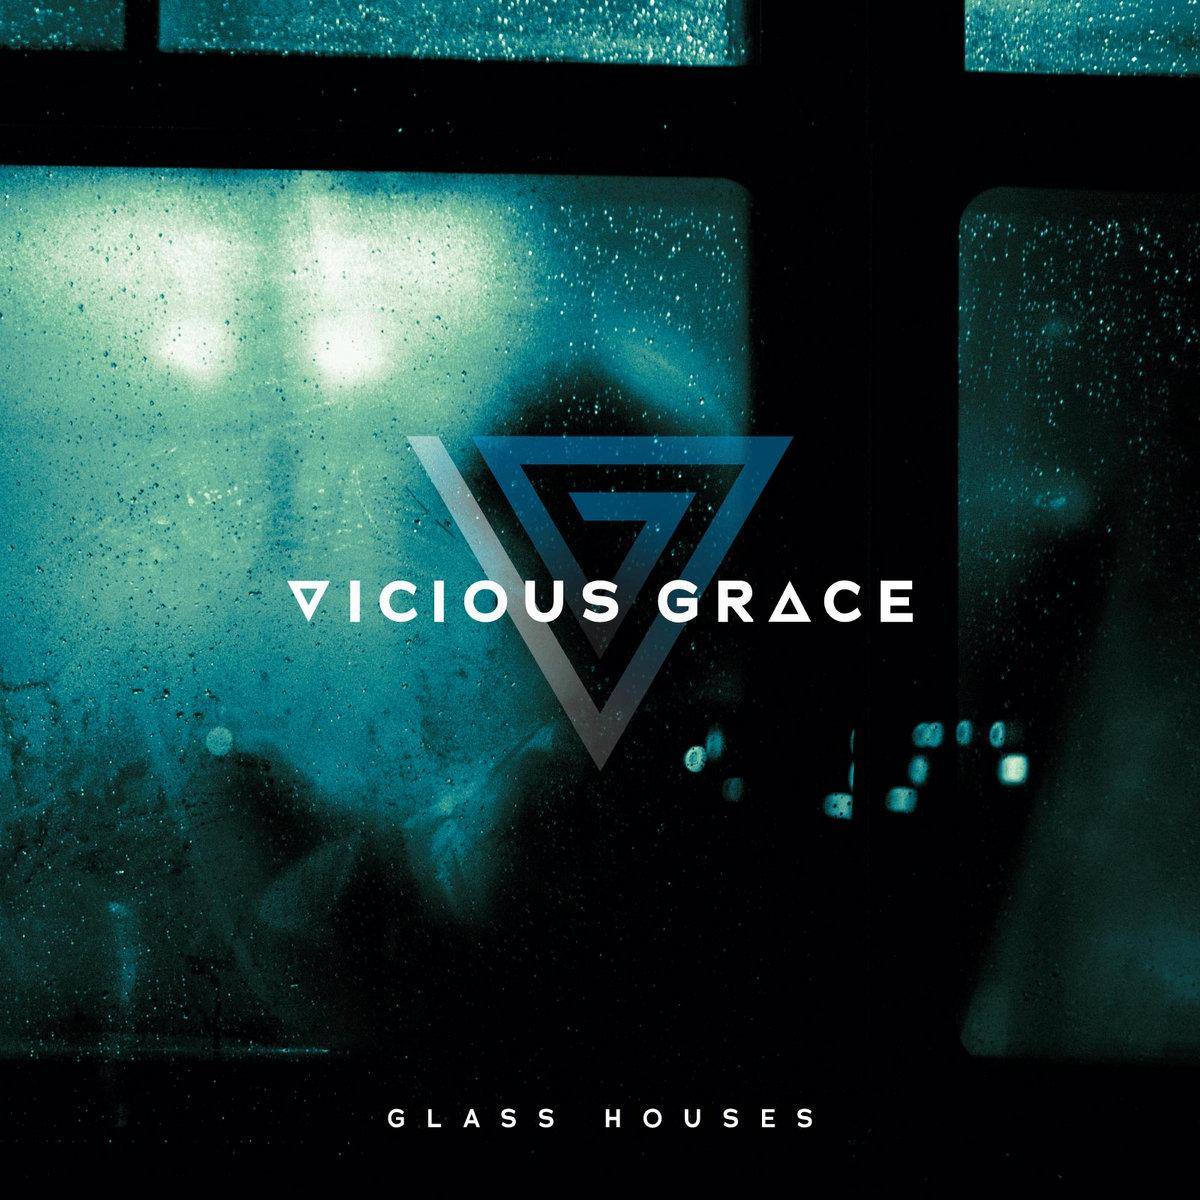 Chronique d'album : VICIOUS GRACE (Metal alternatif), Glass Houses (2021)